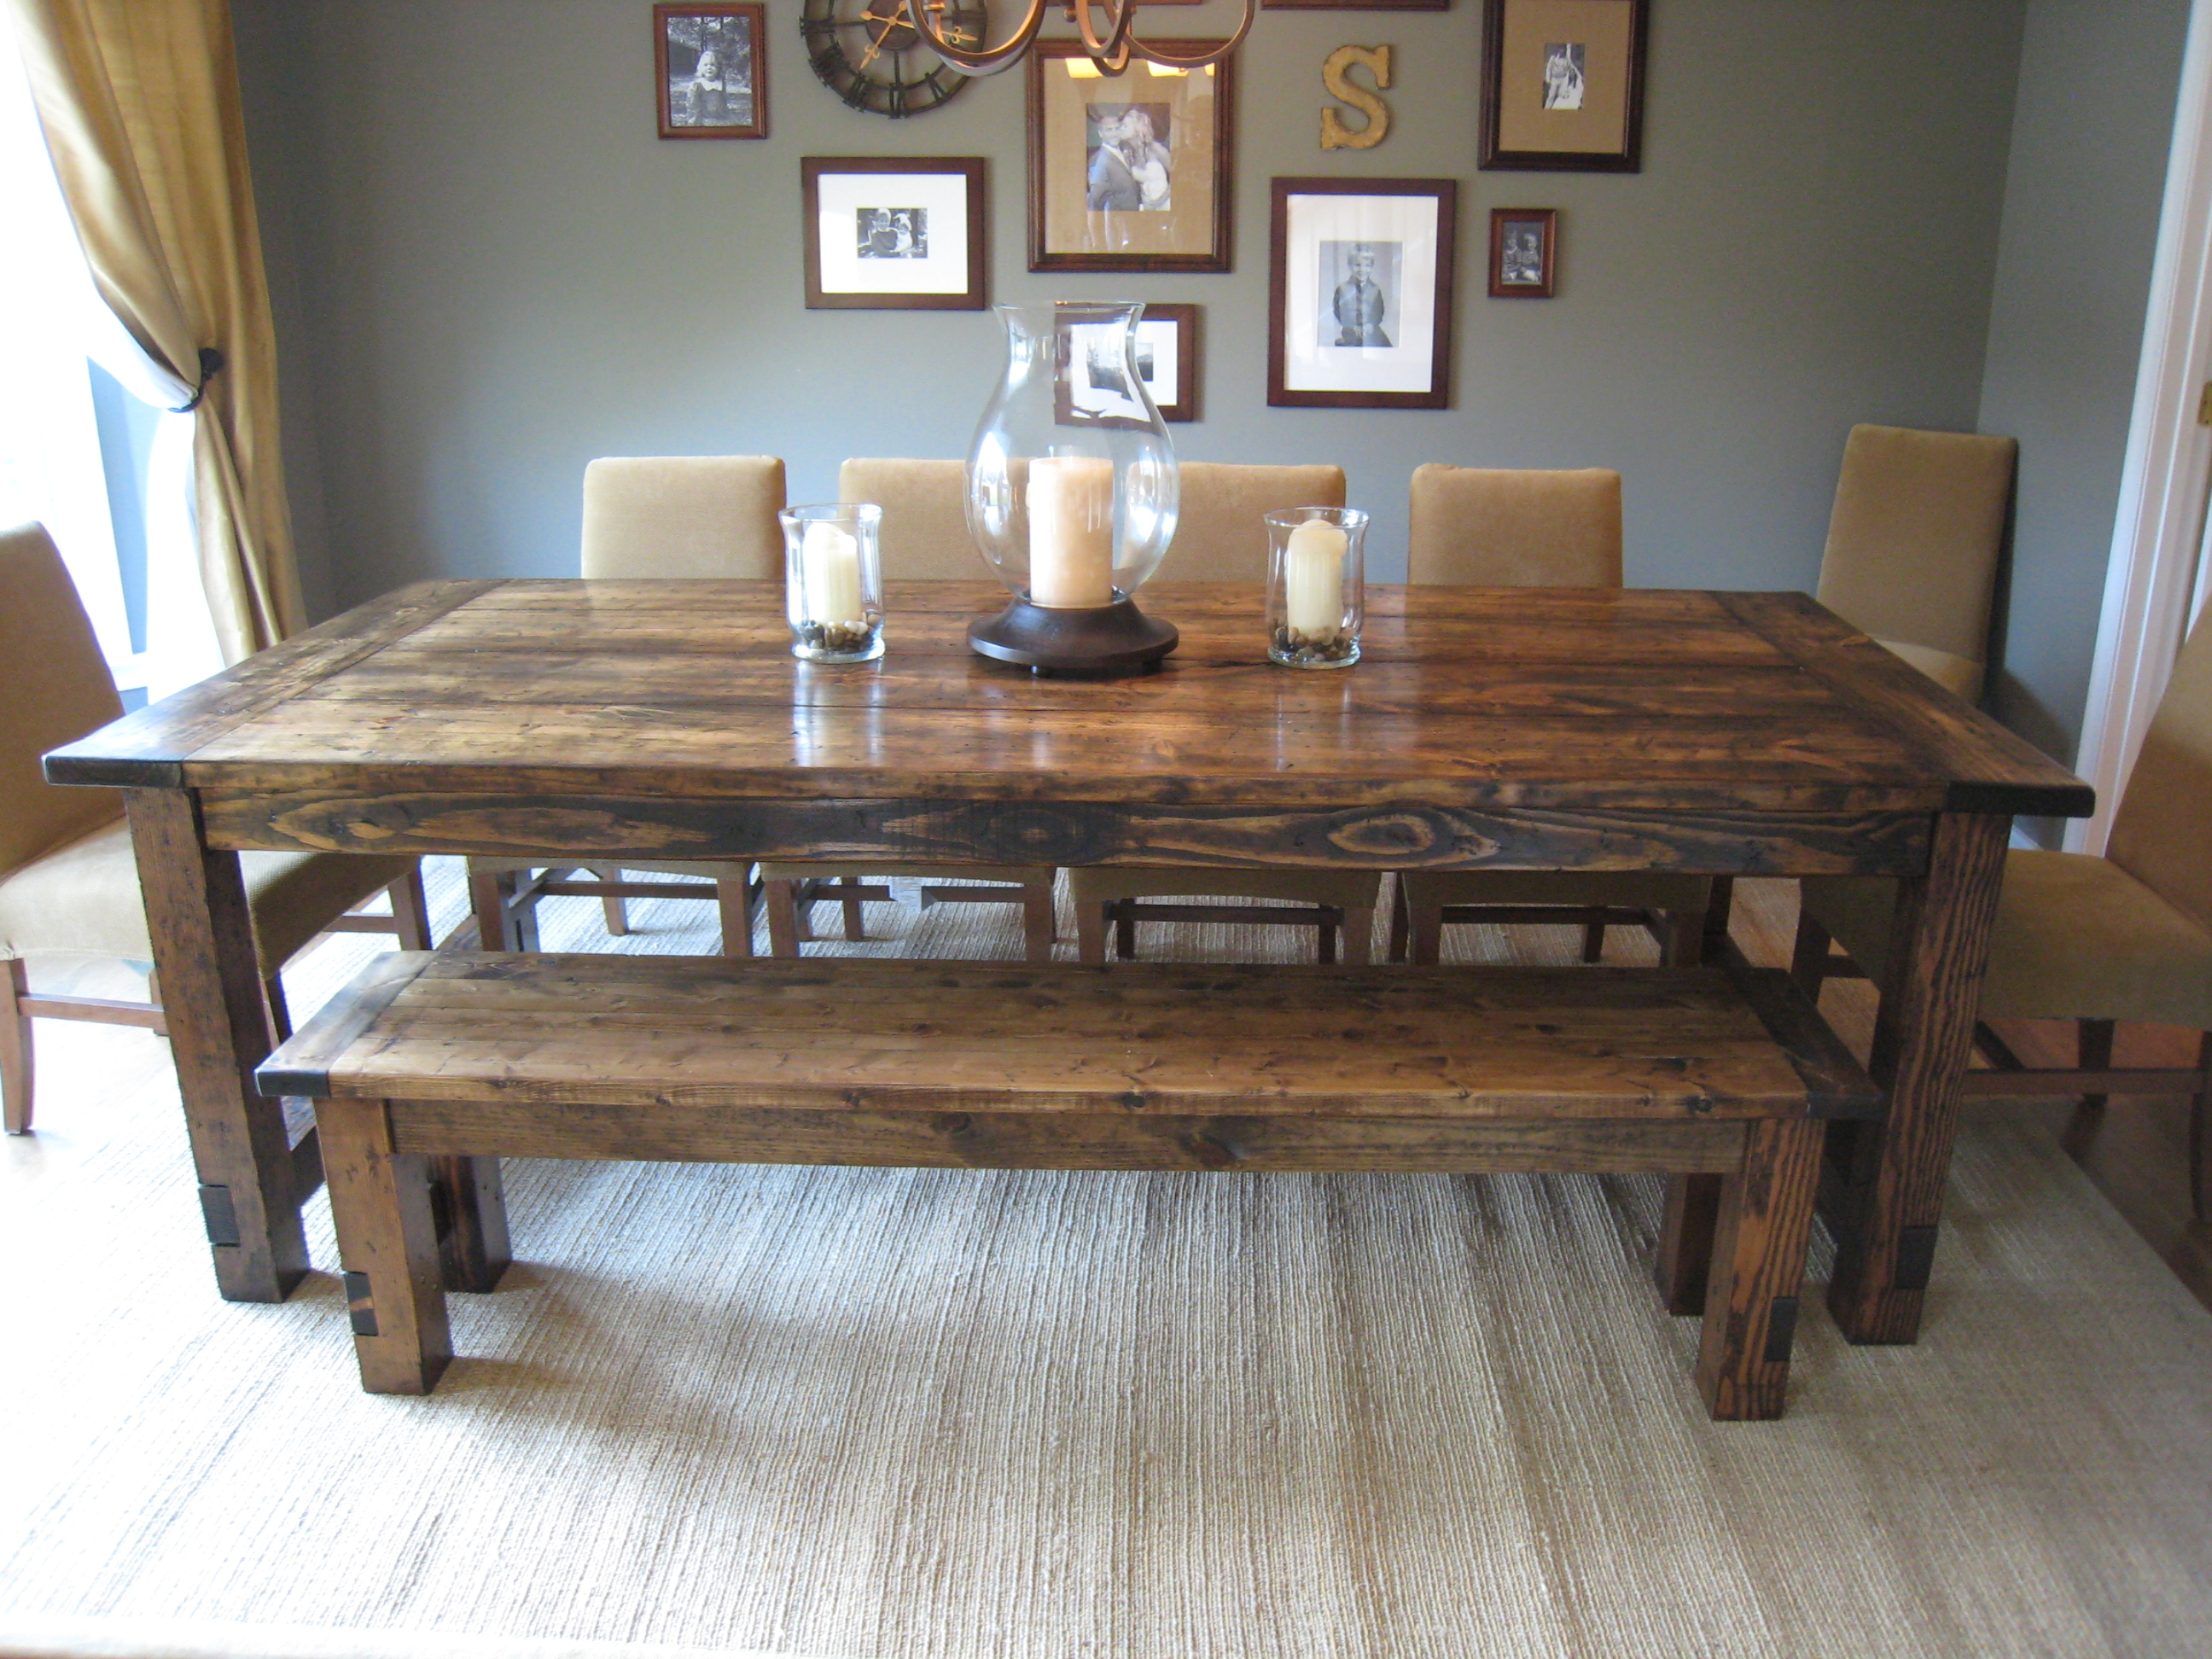 HERE S SOME NEW PICTURES OF THE TABLE ALONG WITH OUR NEW SLIPCOVERED